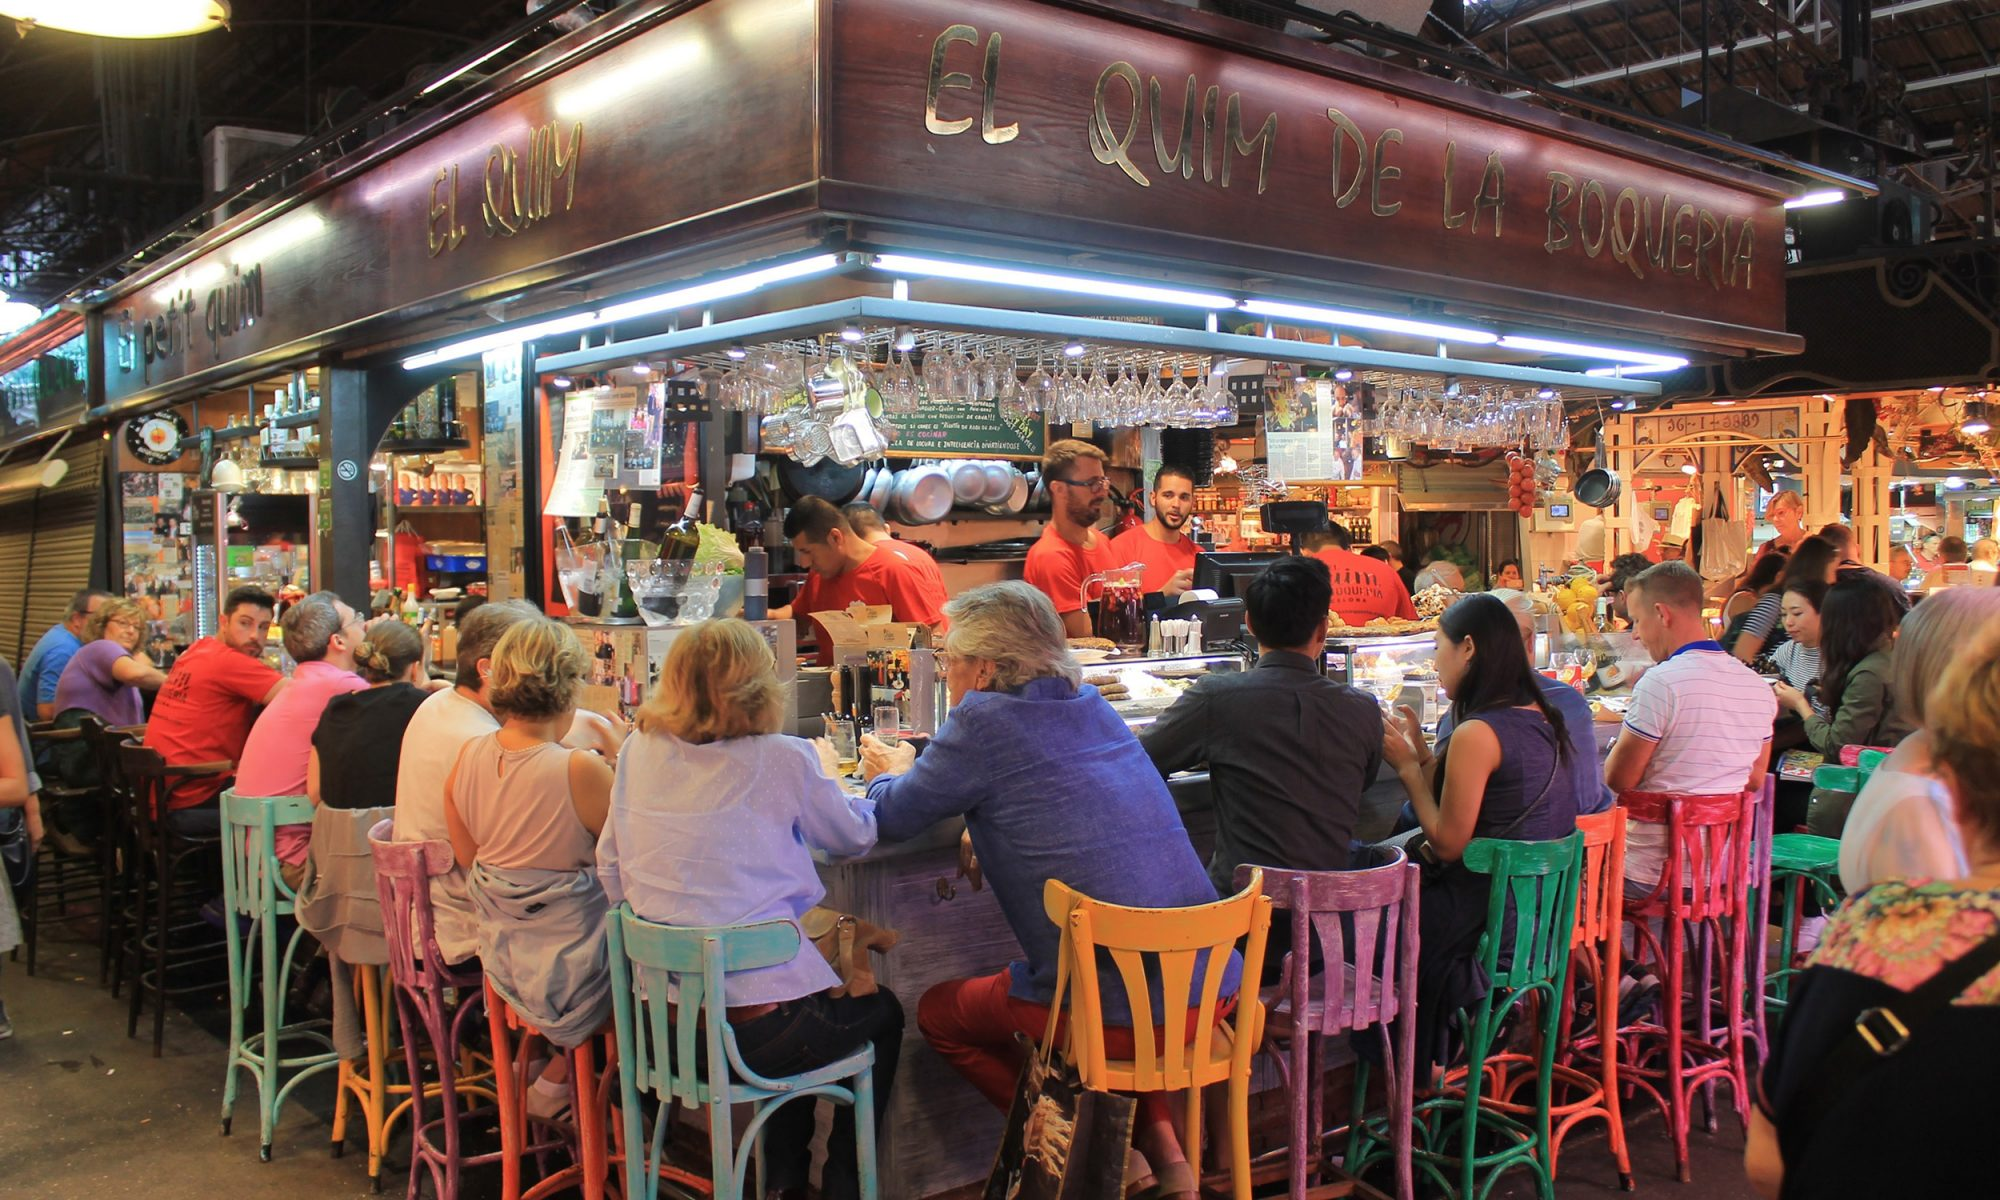 EC: The Best Breakfast in Barcelona Is at a Little Spot Called El Quim